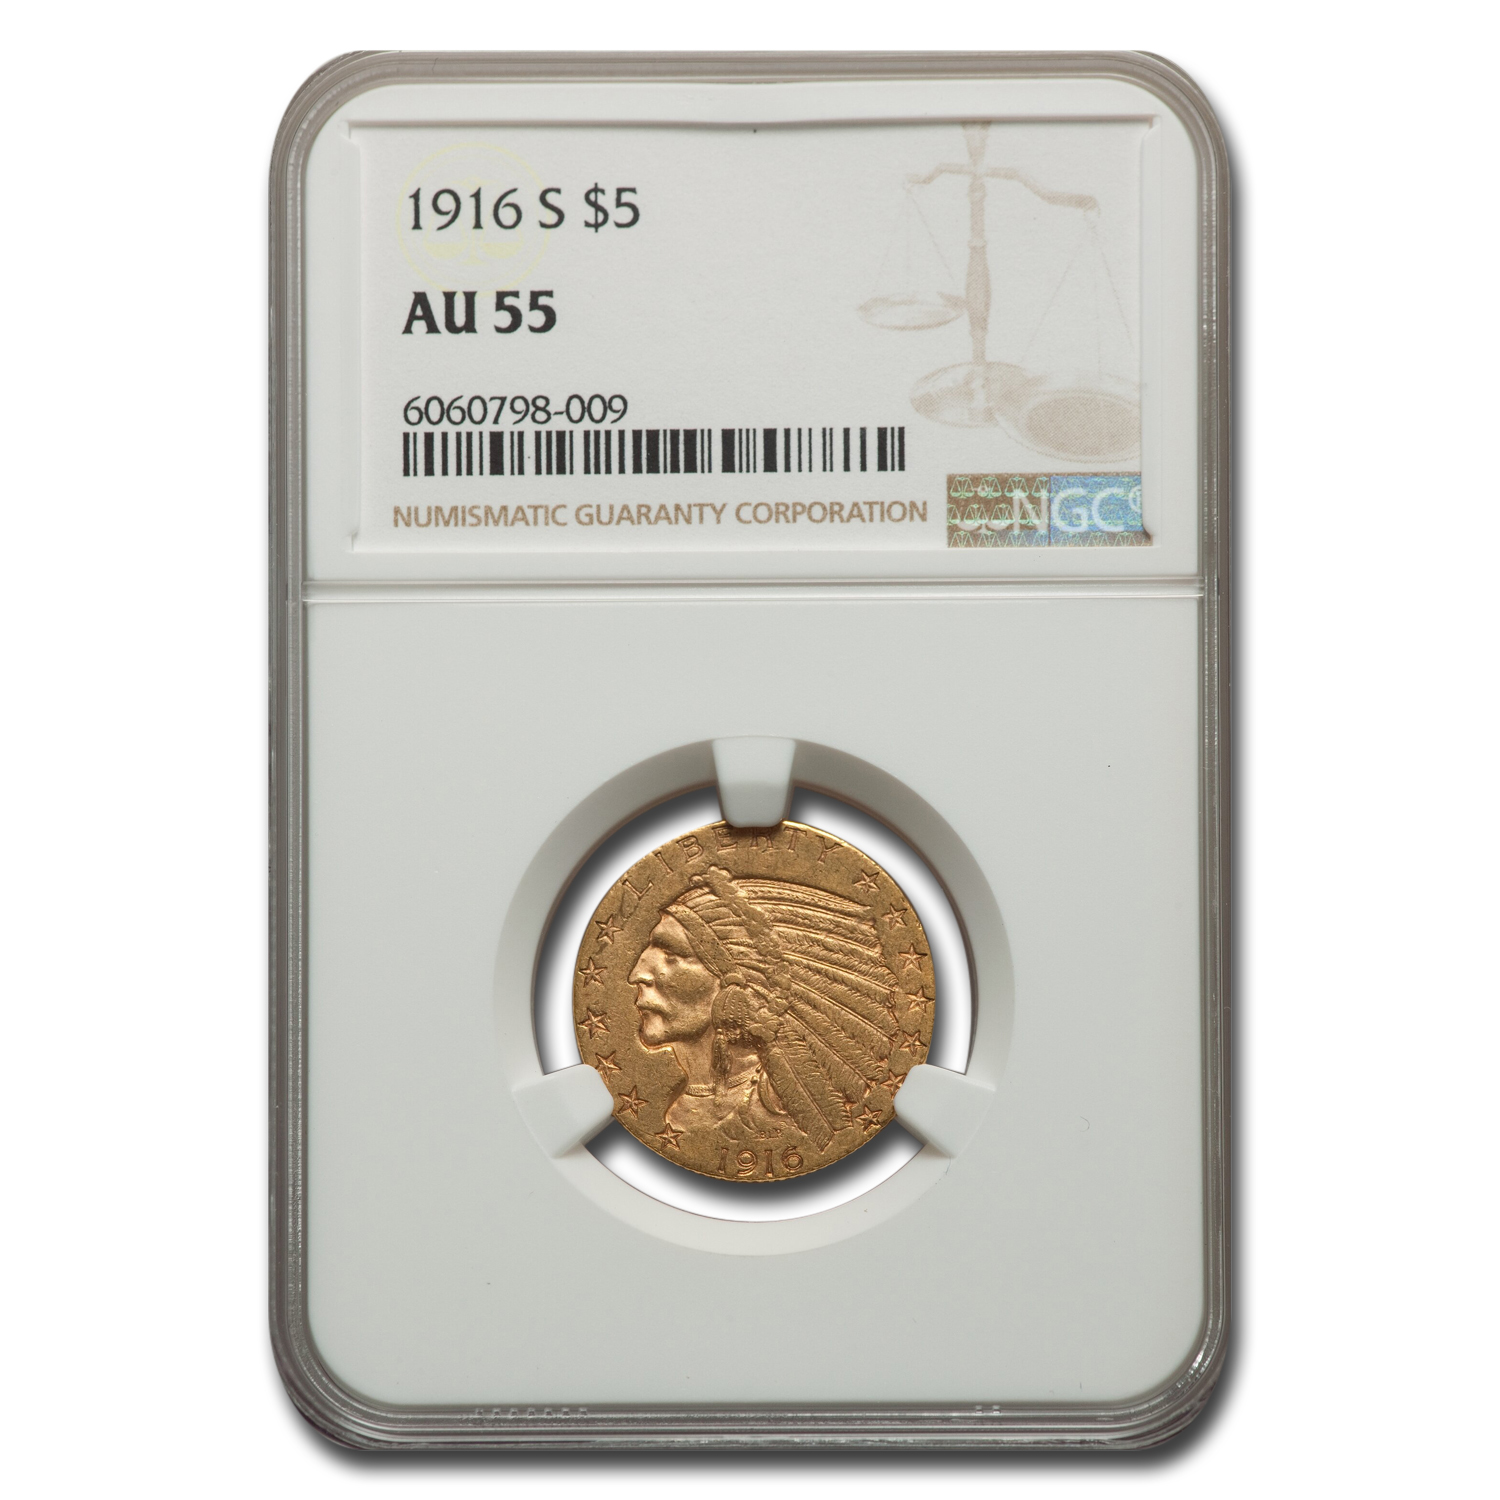 1916-S $5 Indian Gold Half Eagle - AU-55 NGC